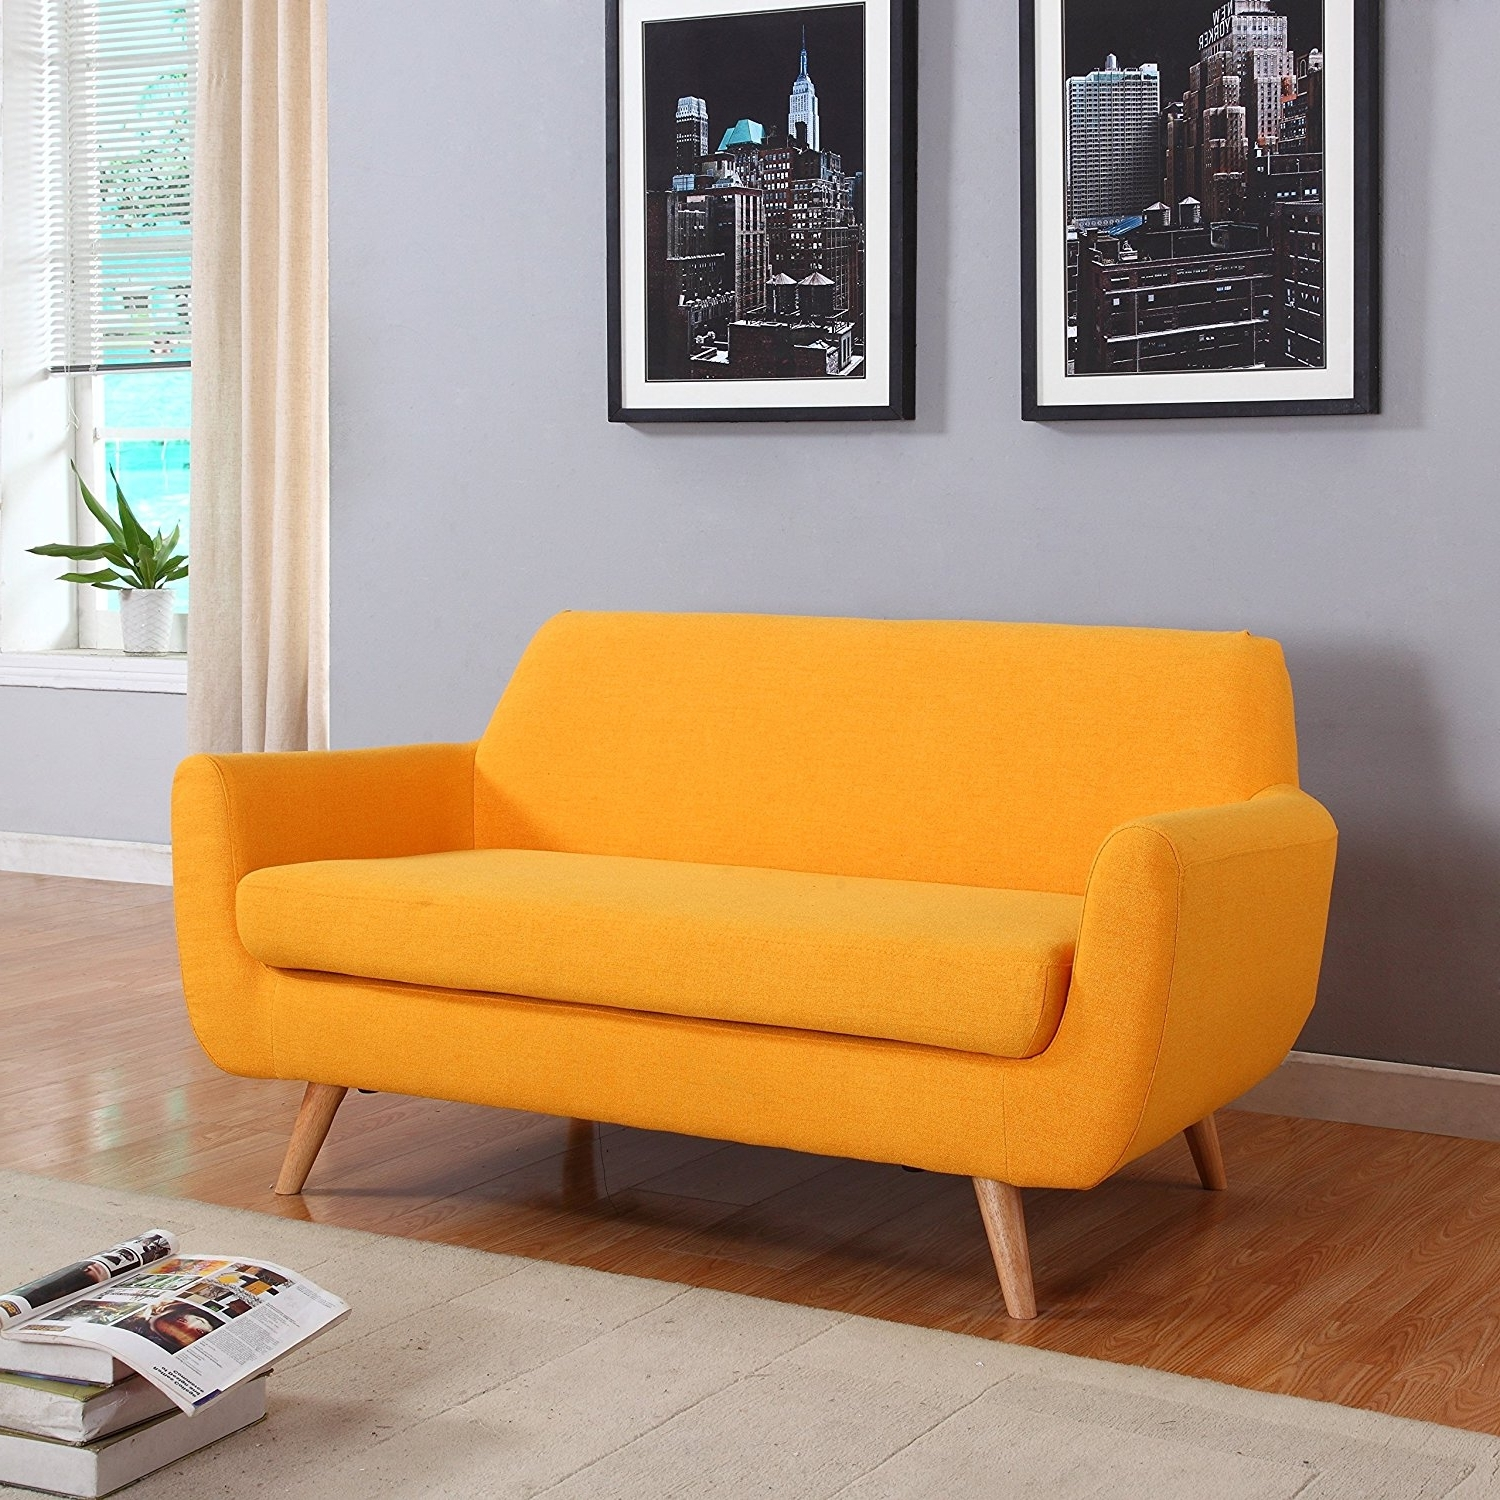 Kingston Sectional Sofas In Widely Used Furniture : Klaussner Hybrid Sofa Sofa Sale January Klaussner (View 13 of 20)